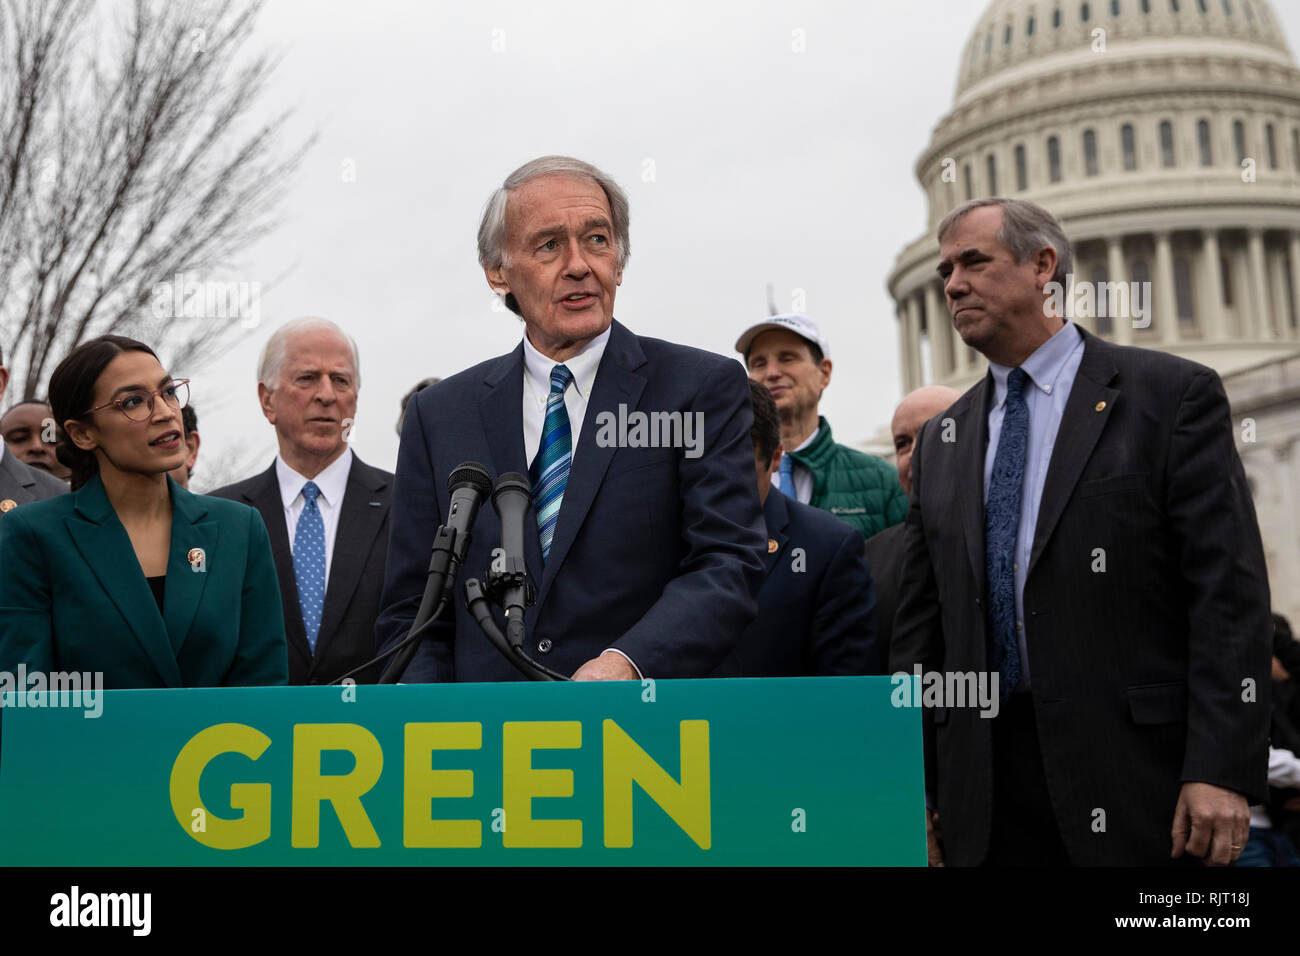 """Senator Ed Markey, Democrat of Massachusetts, speaks during a press conference to announce the """"Green New Deal"""" held at the United States Capitol in Washington, DC on February 7, 2019. Credit: Alex Edelman/CNP 